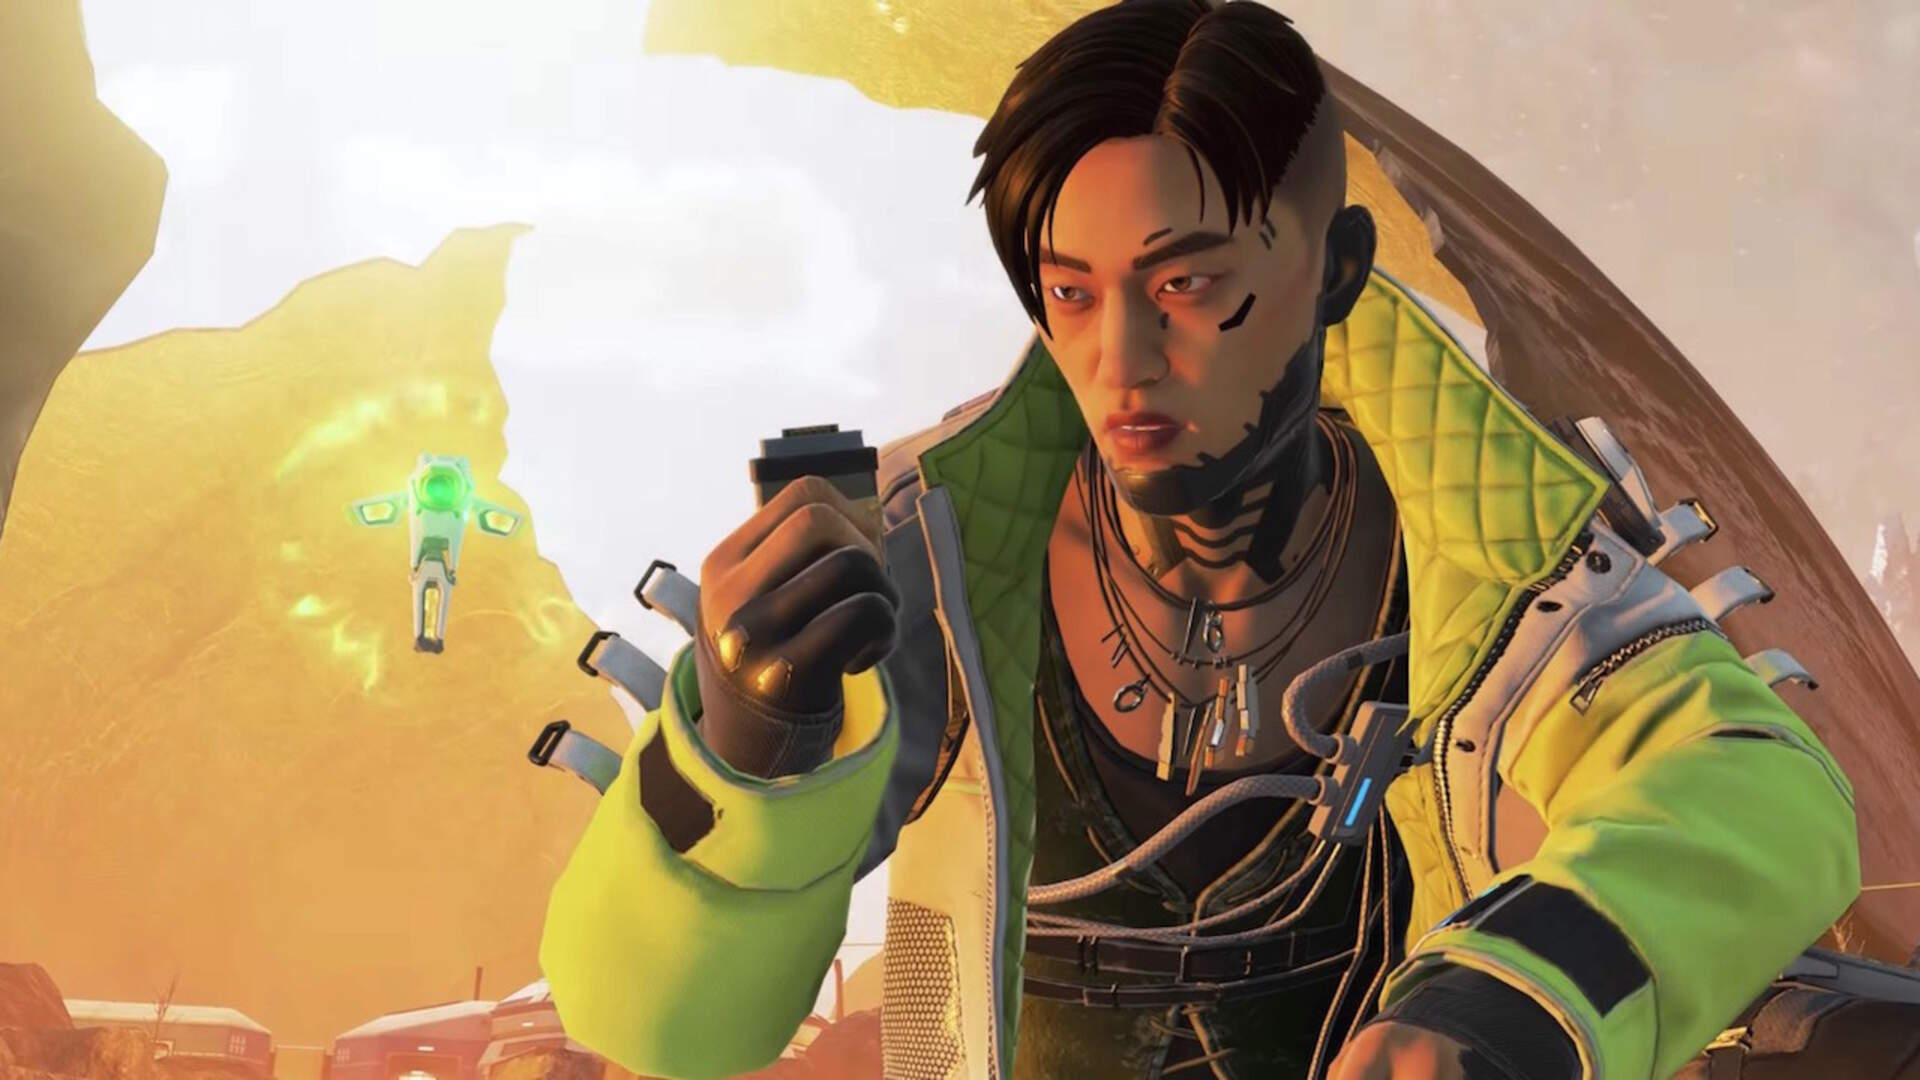 Crypto's Drone has Another Exploit in Apex Legends